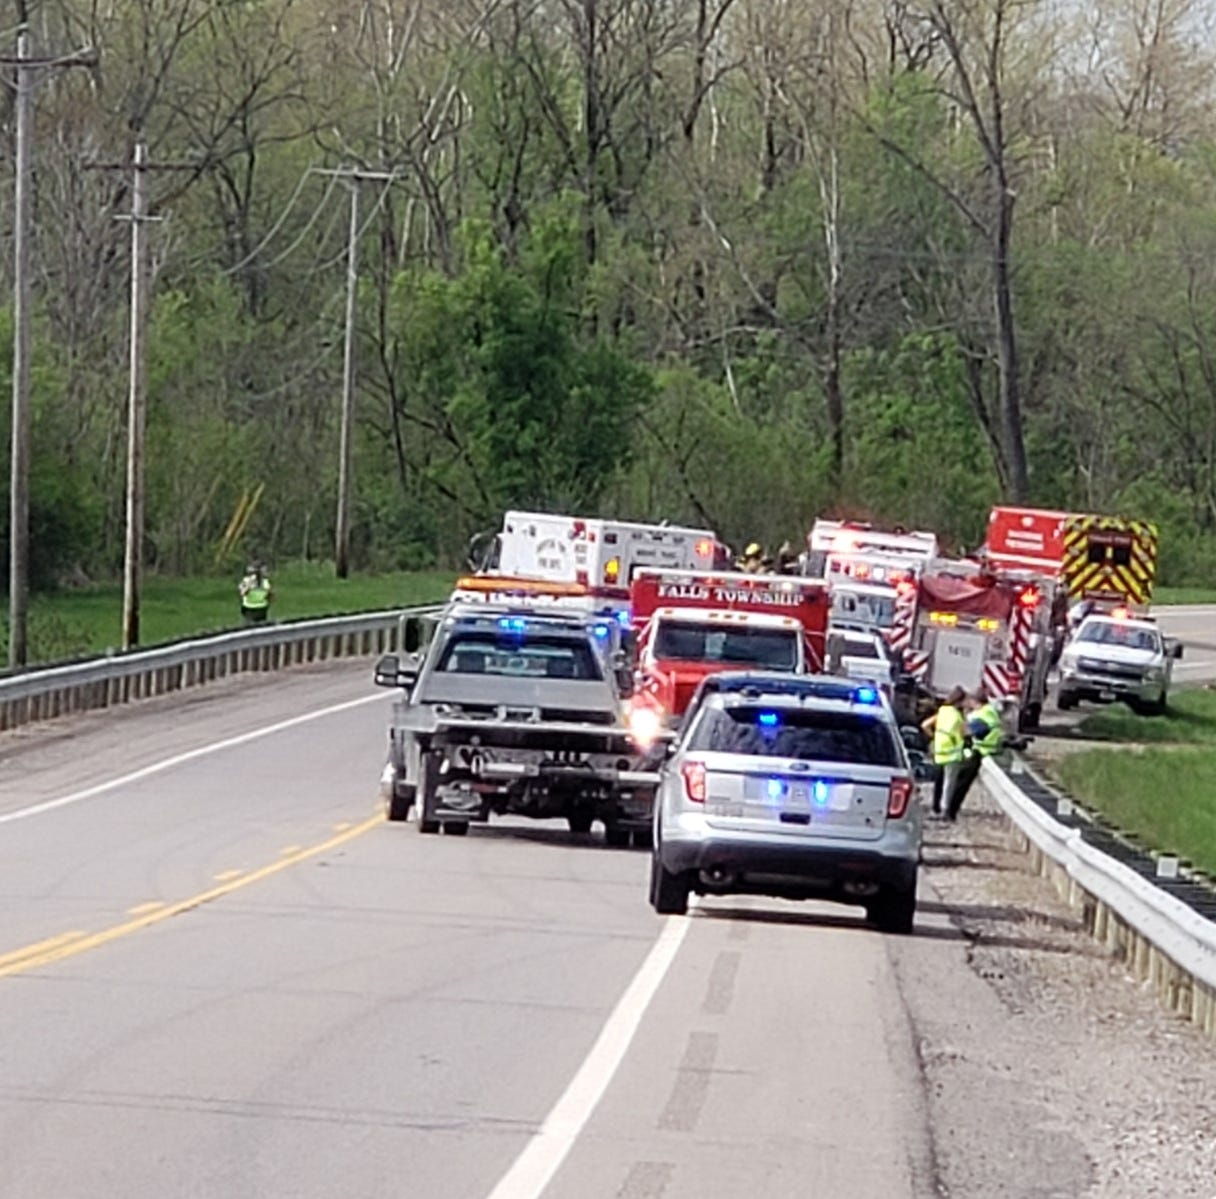 Coroner called in to accident scene on Maysville Pike